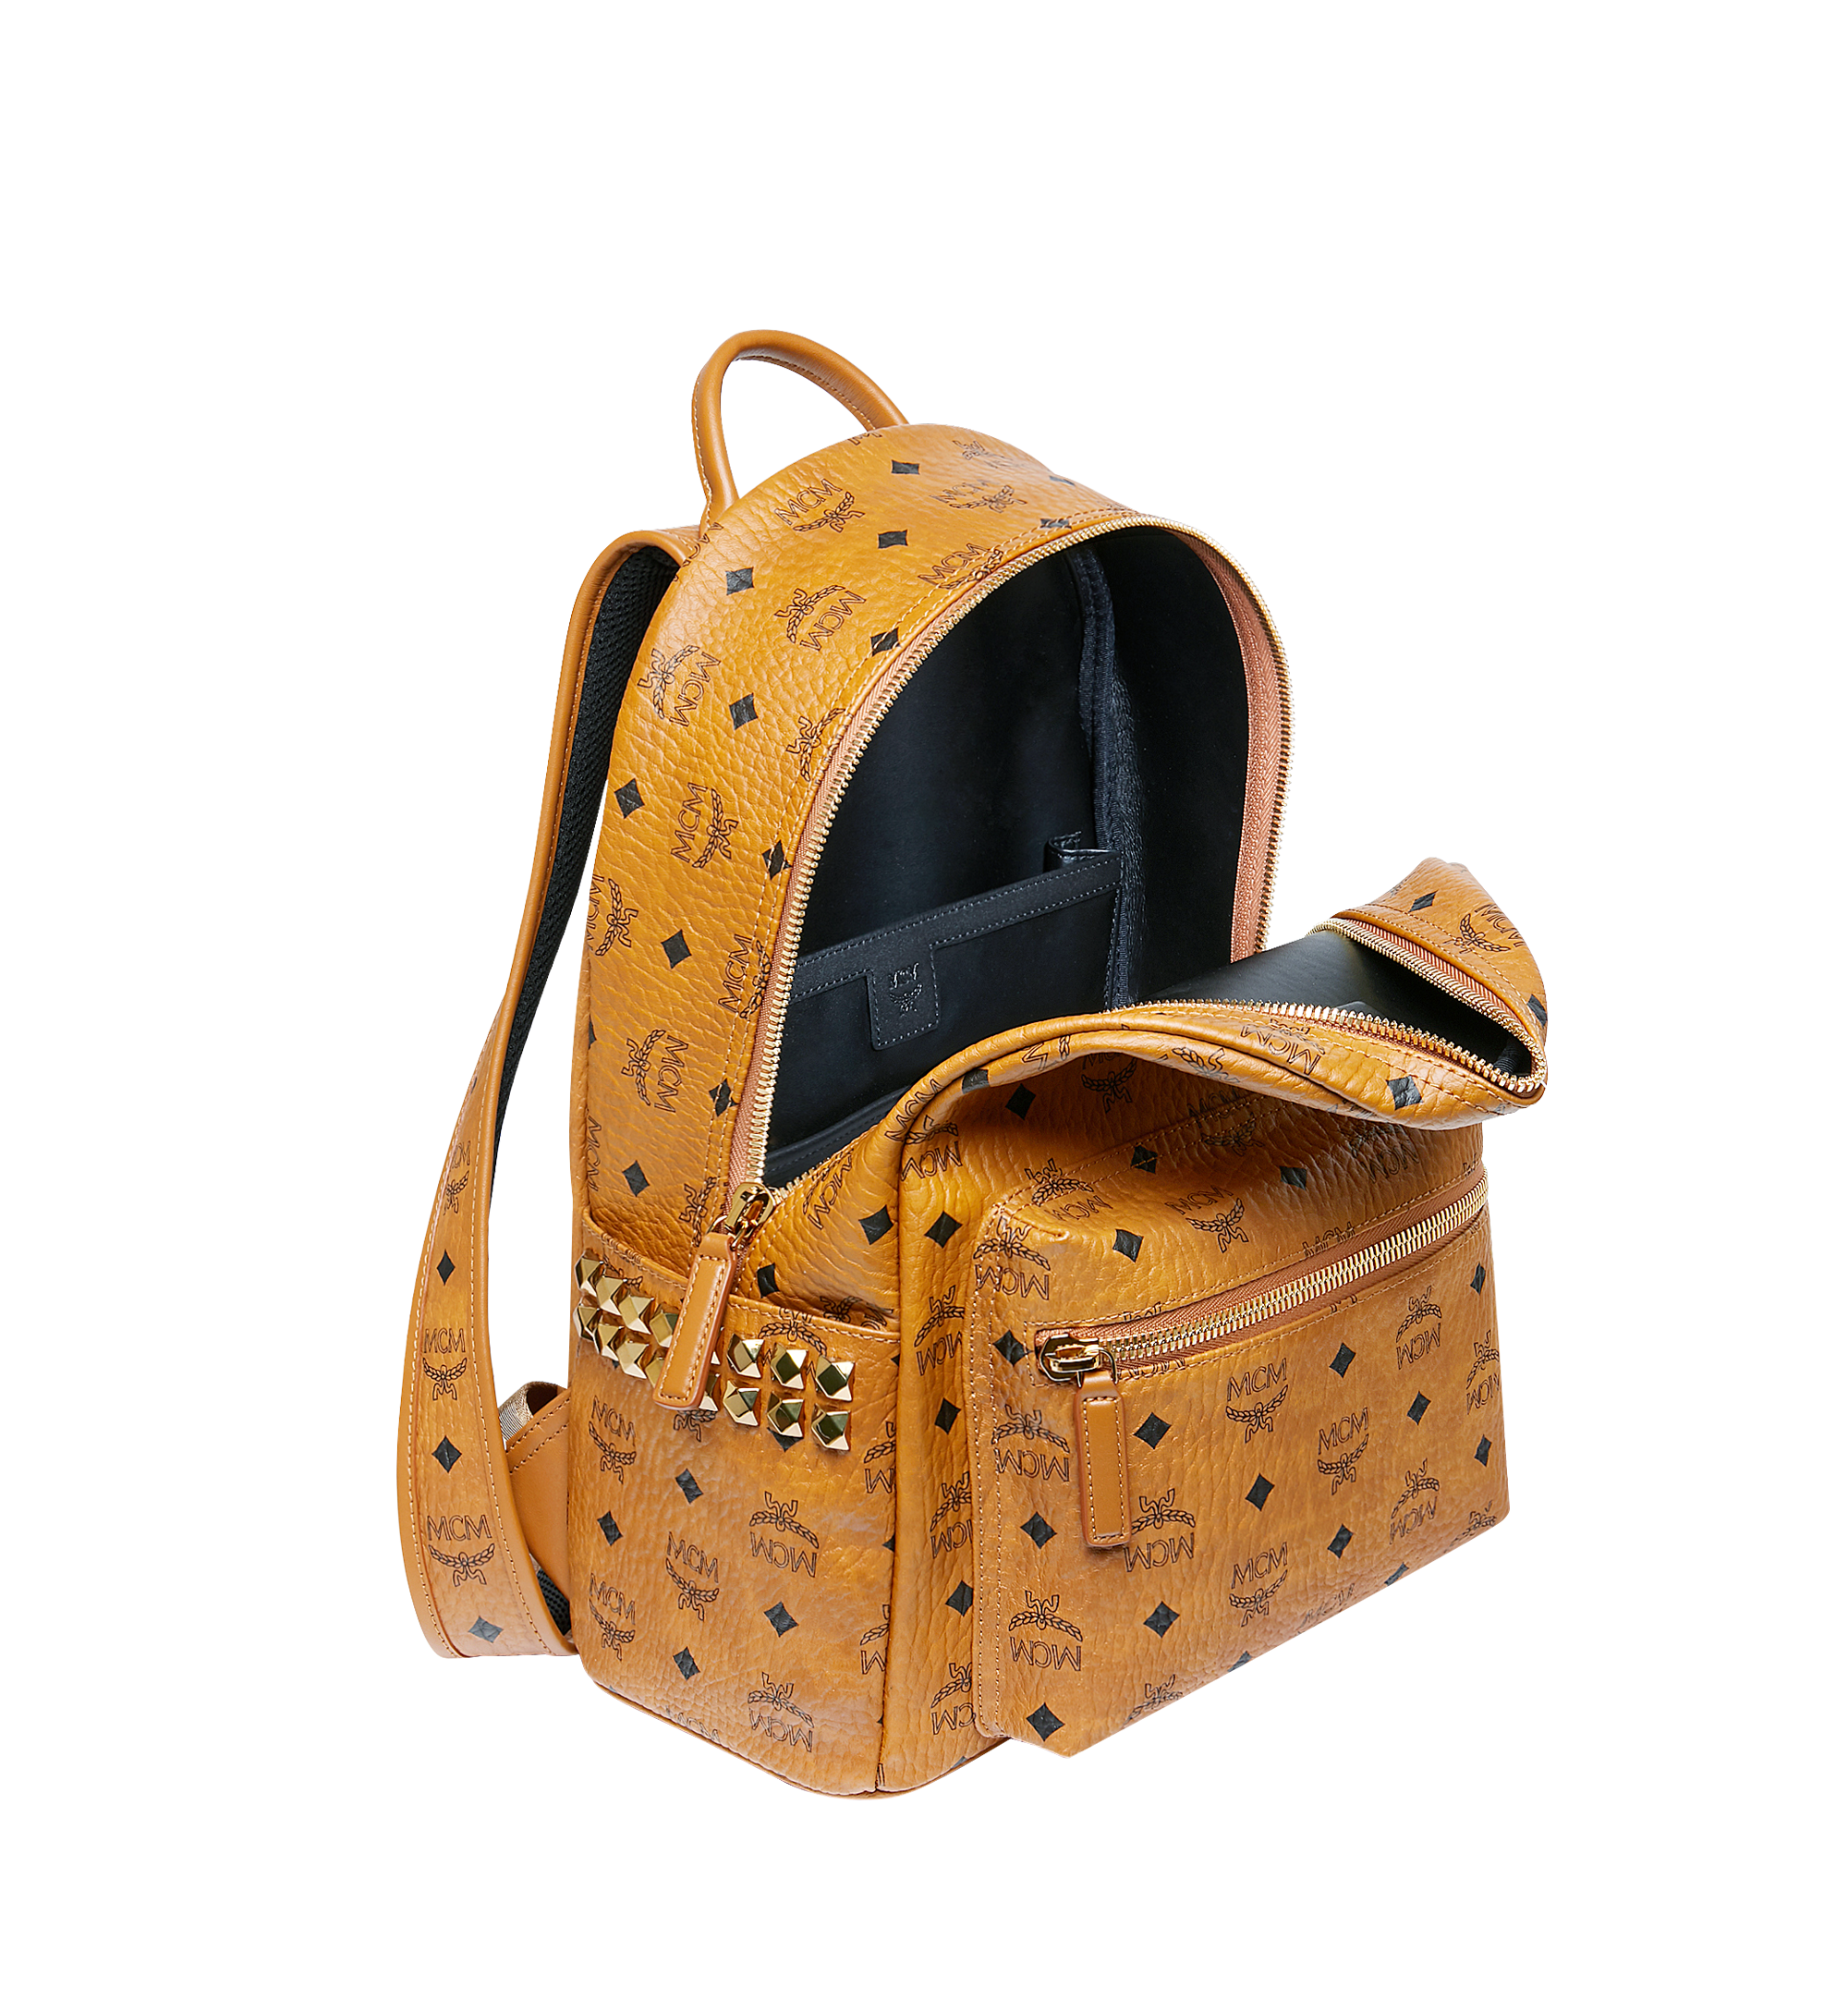 37 cm 14.5 in Stark Side Studs Rucksack in Visetos Cognac